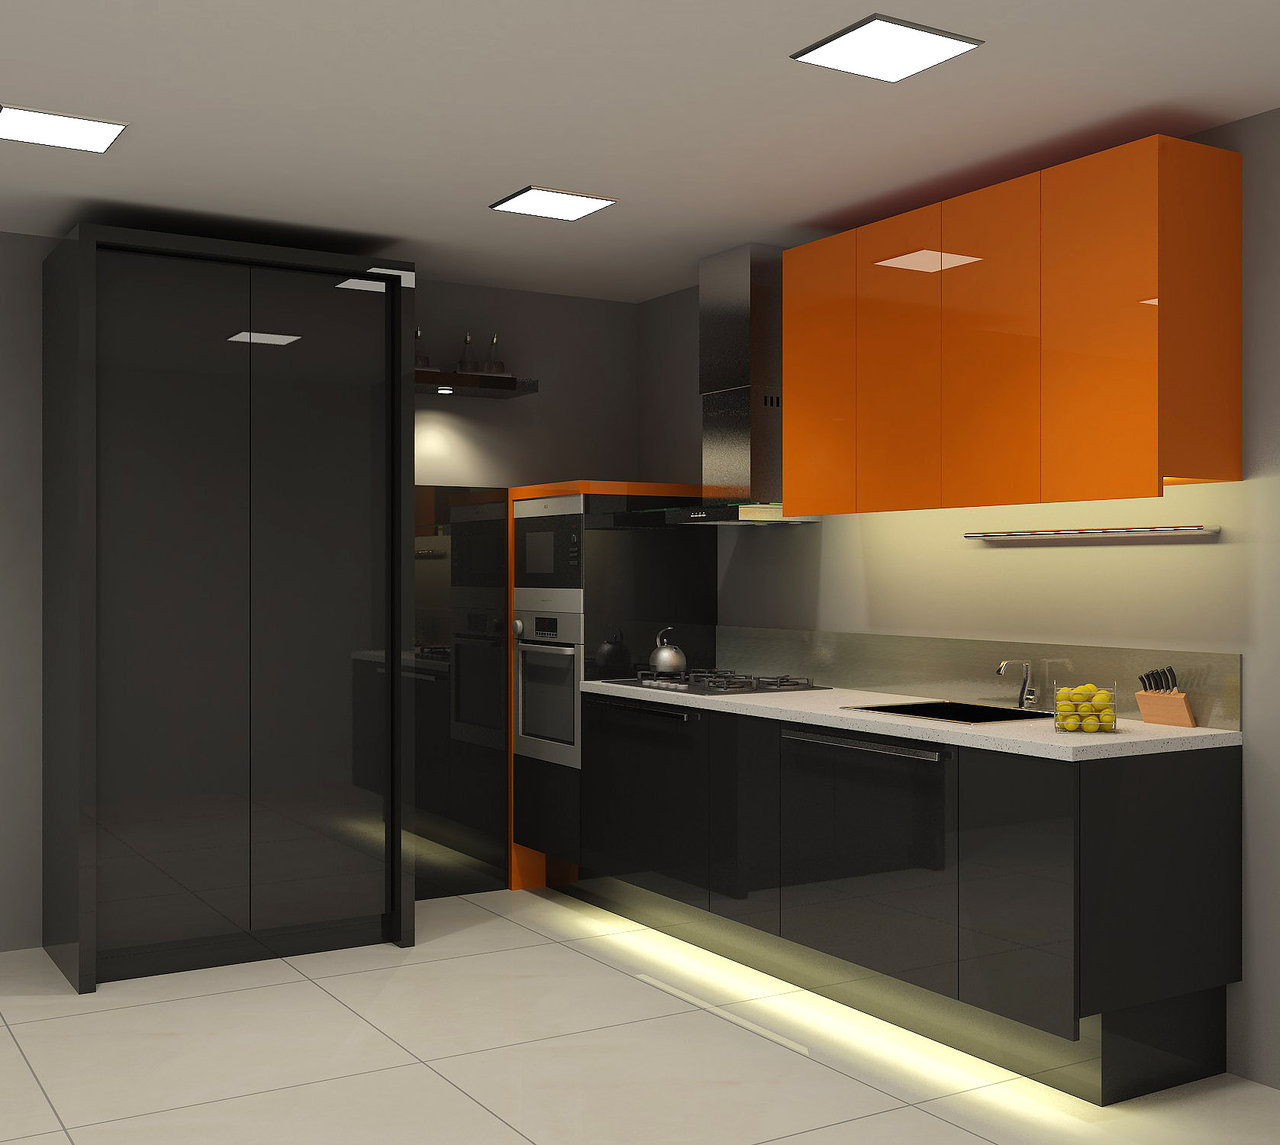 Orange kitchens - Modern small kitchen decoration ...